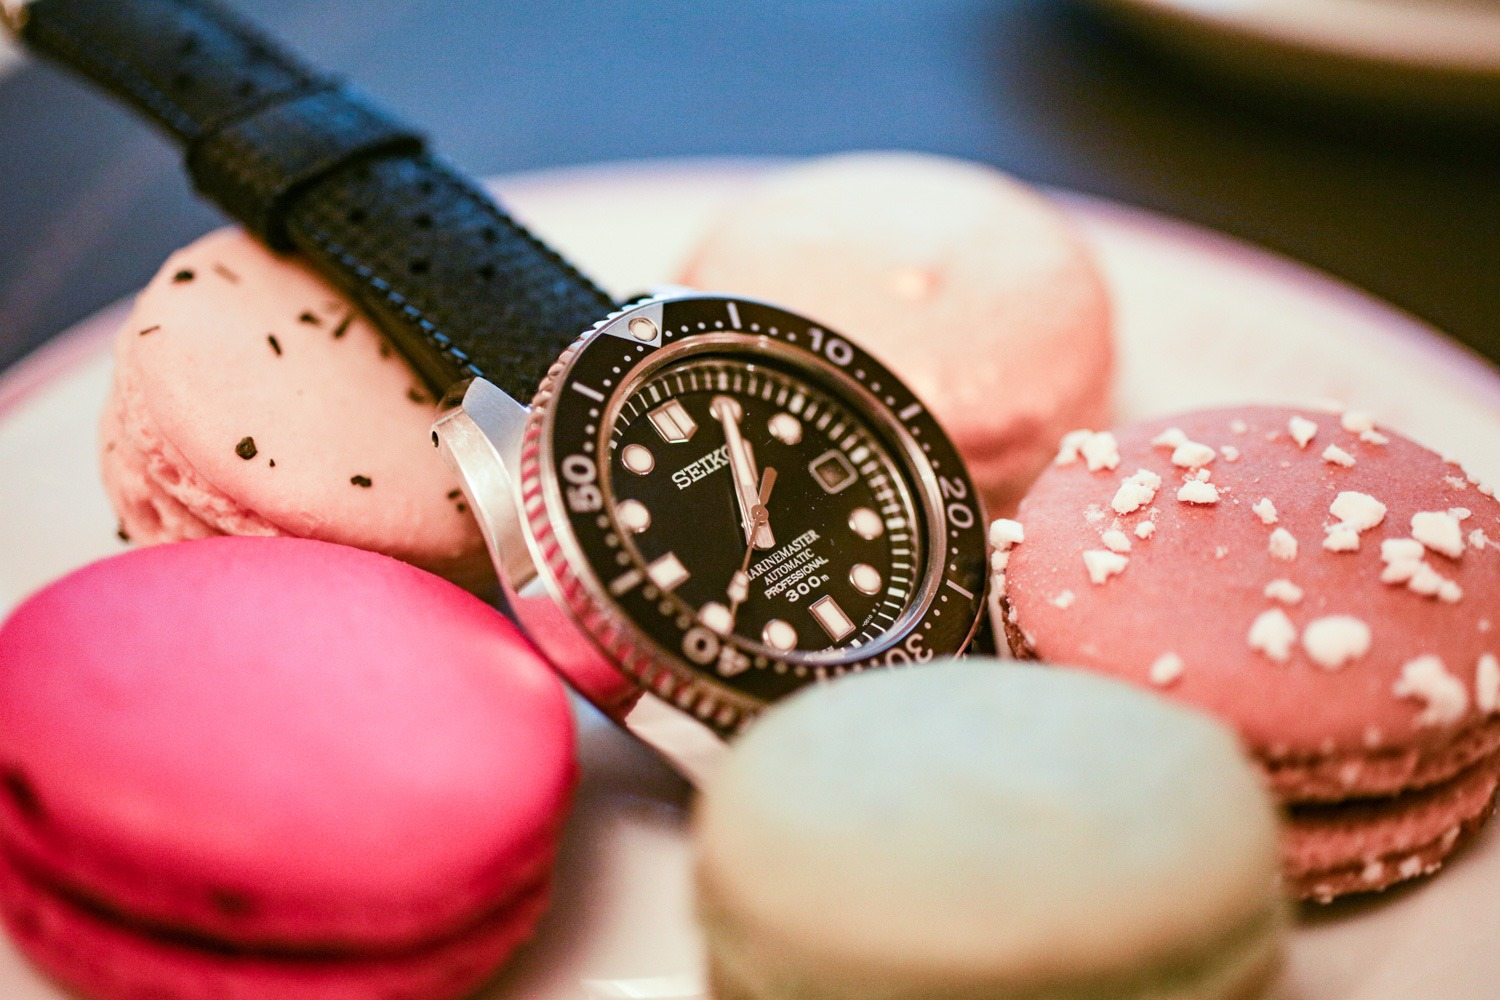 Seiko Marine Master 300 - The Watch Snack : Café Angelina